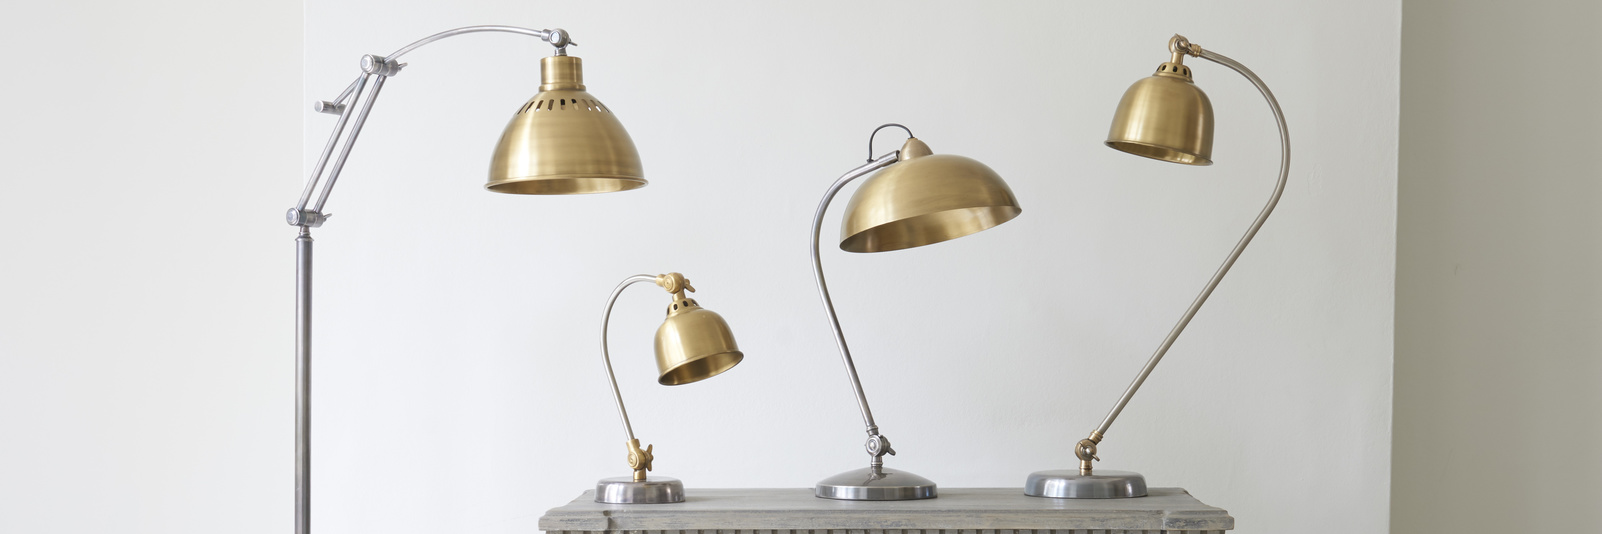 Brass Gaston lamp range